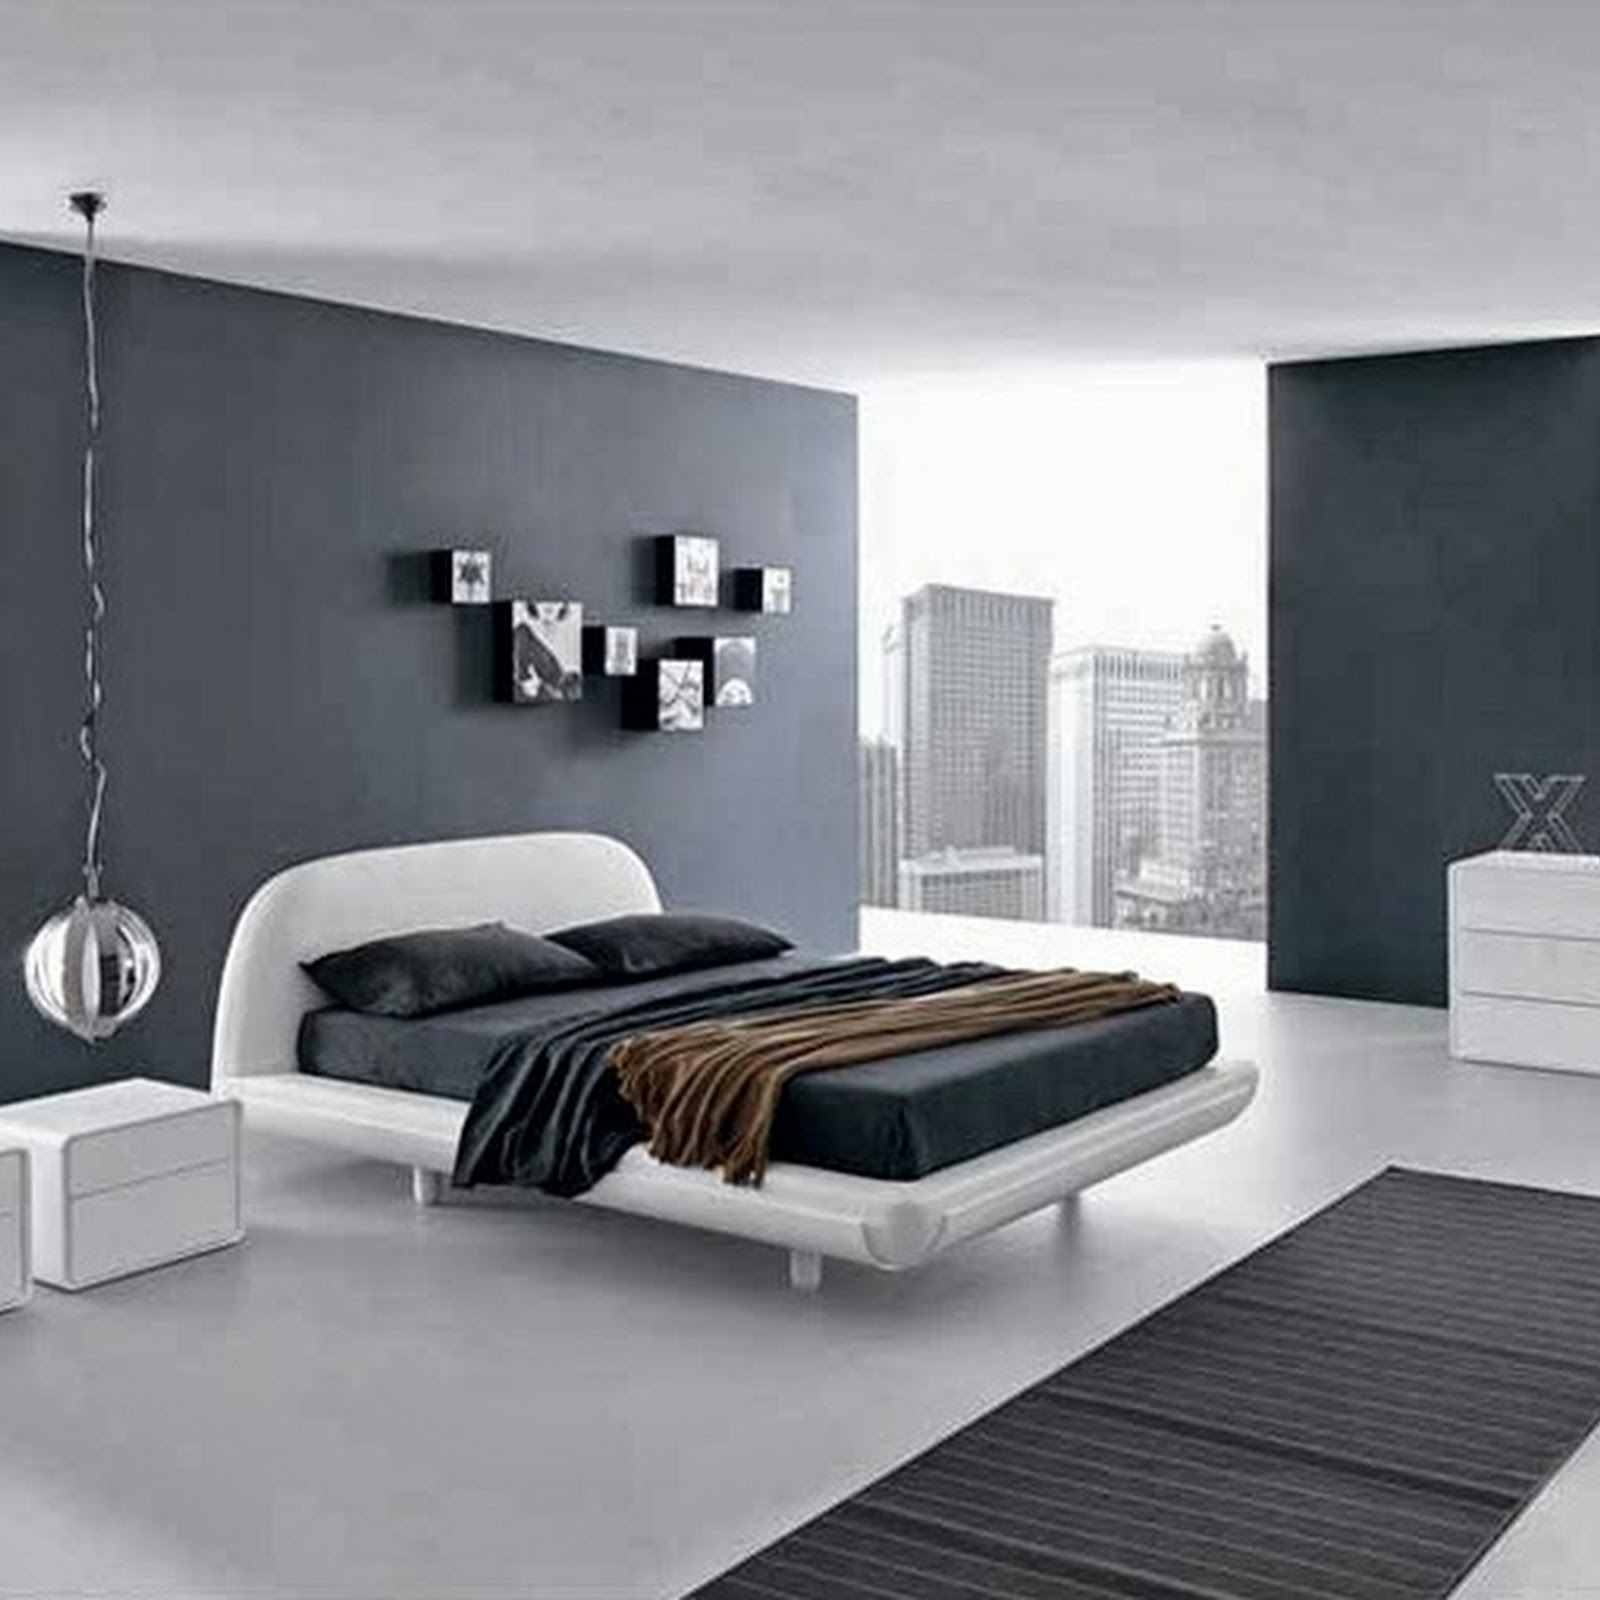 colors for bedrooms ideas photo - 2